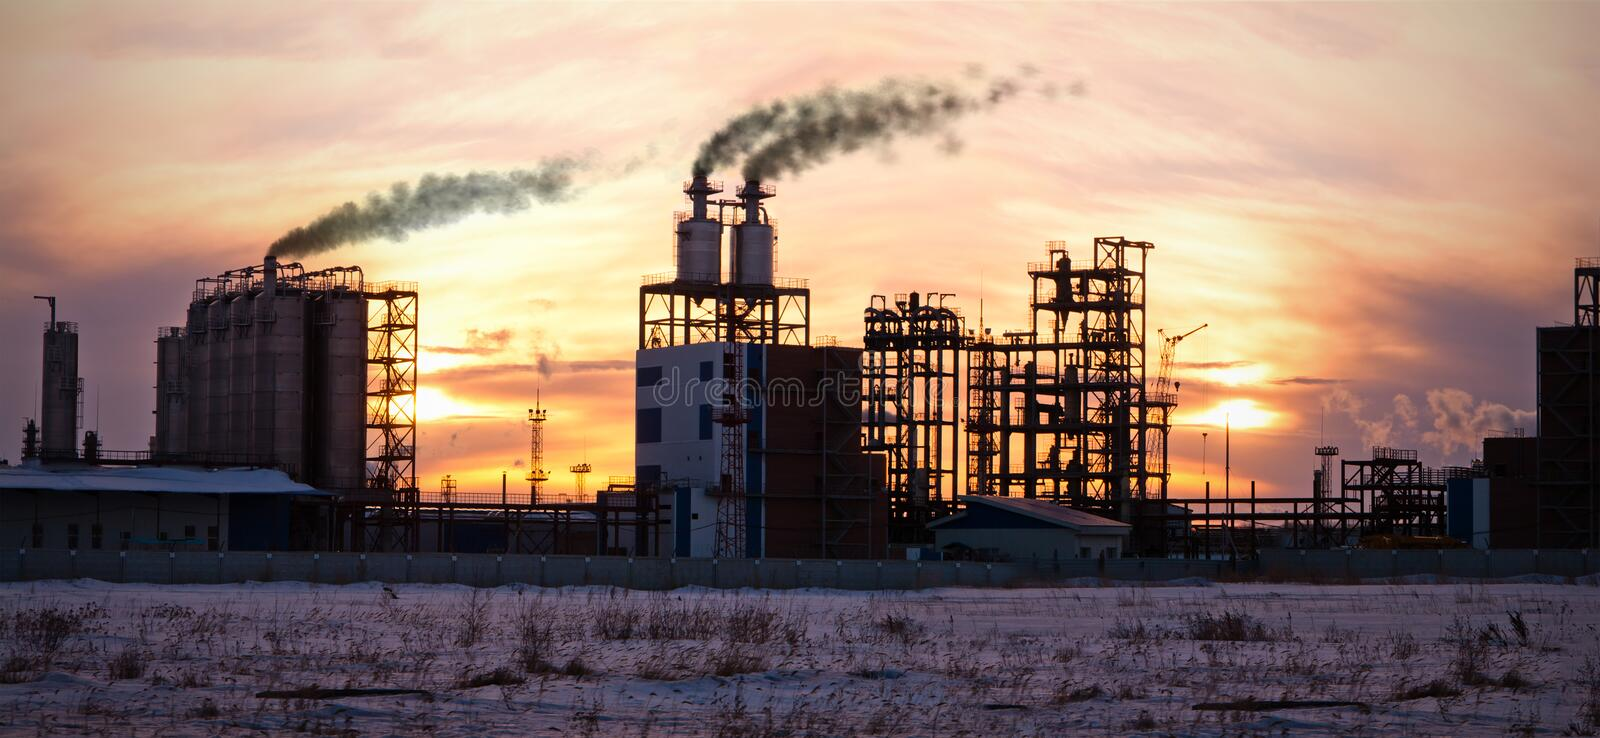 Oil refinery at sunset. Enviroment pollution. royalty free stock photography